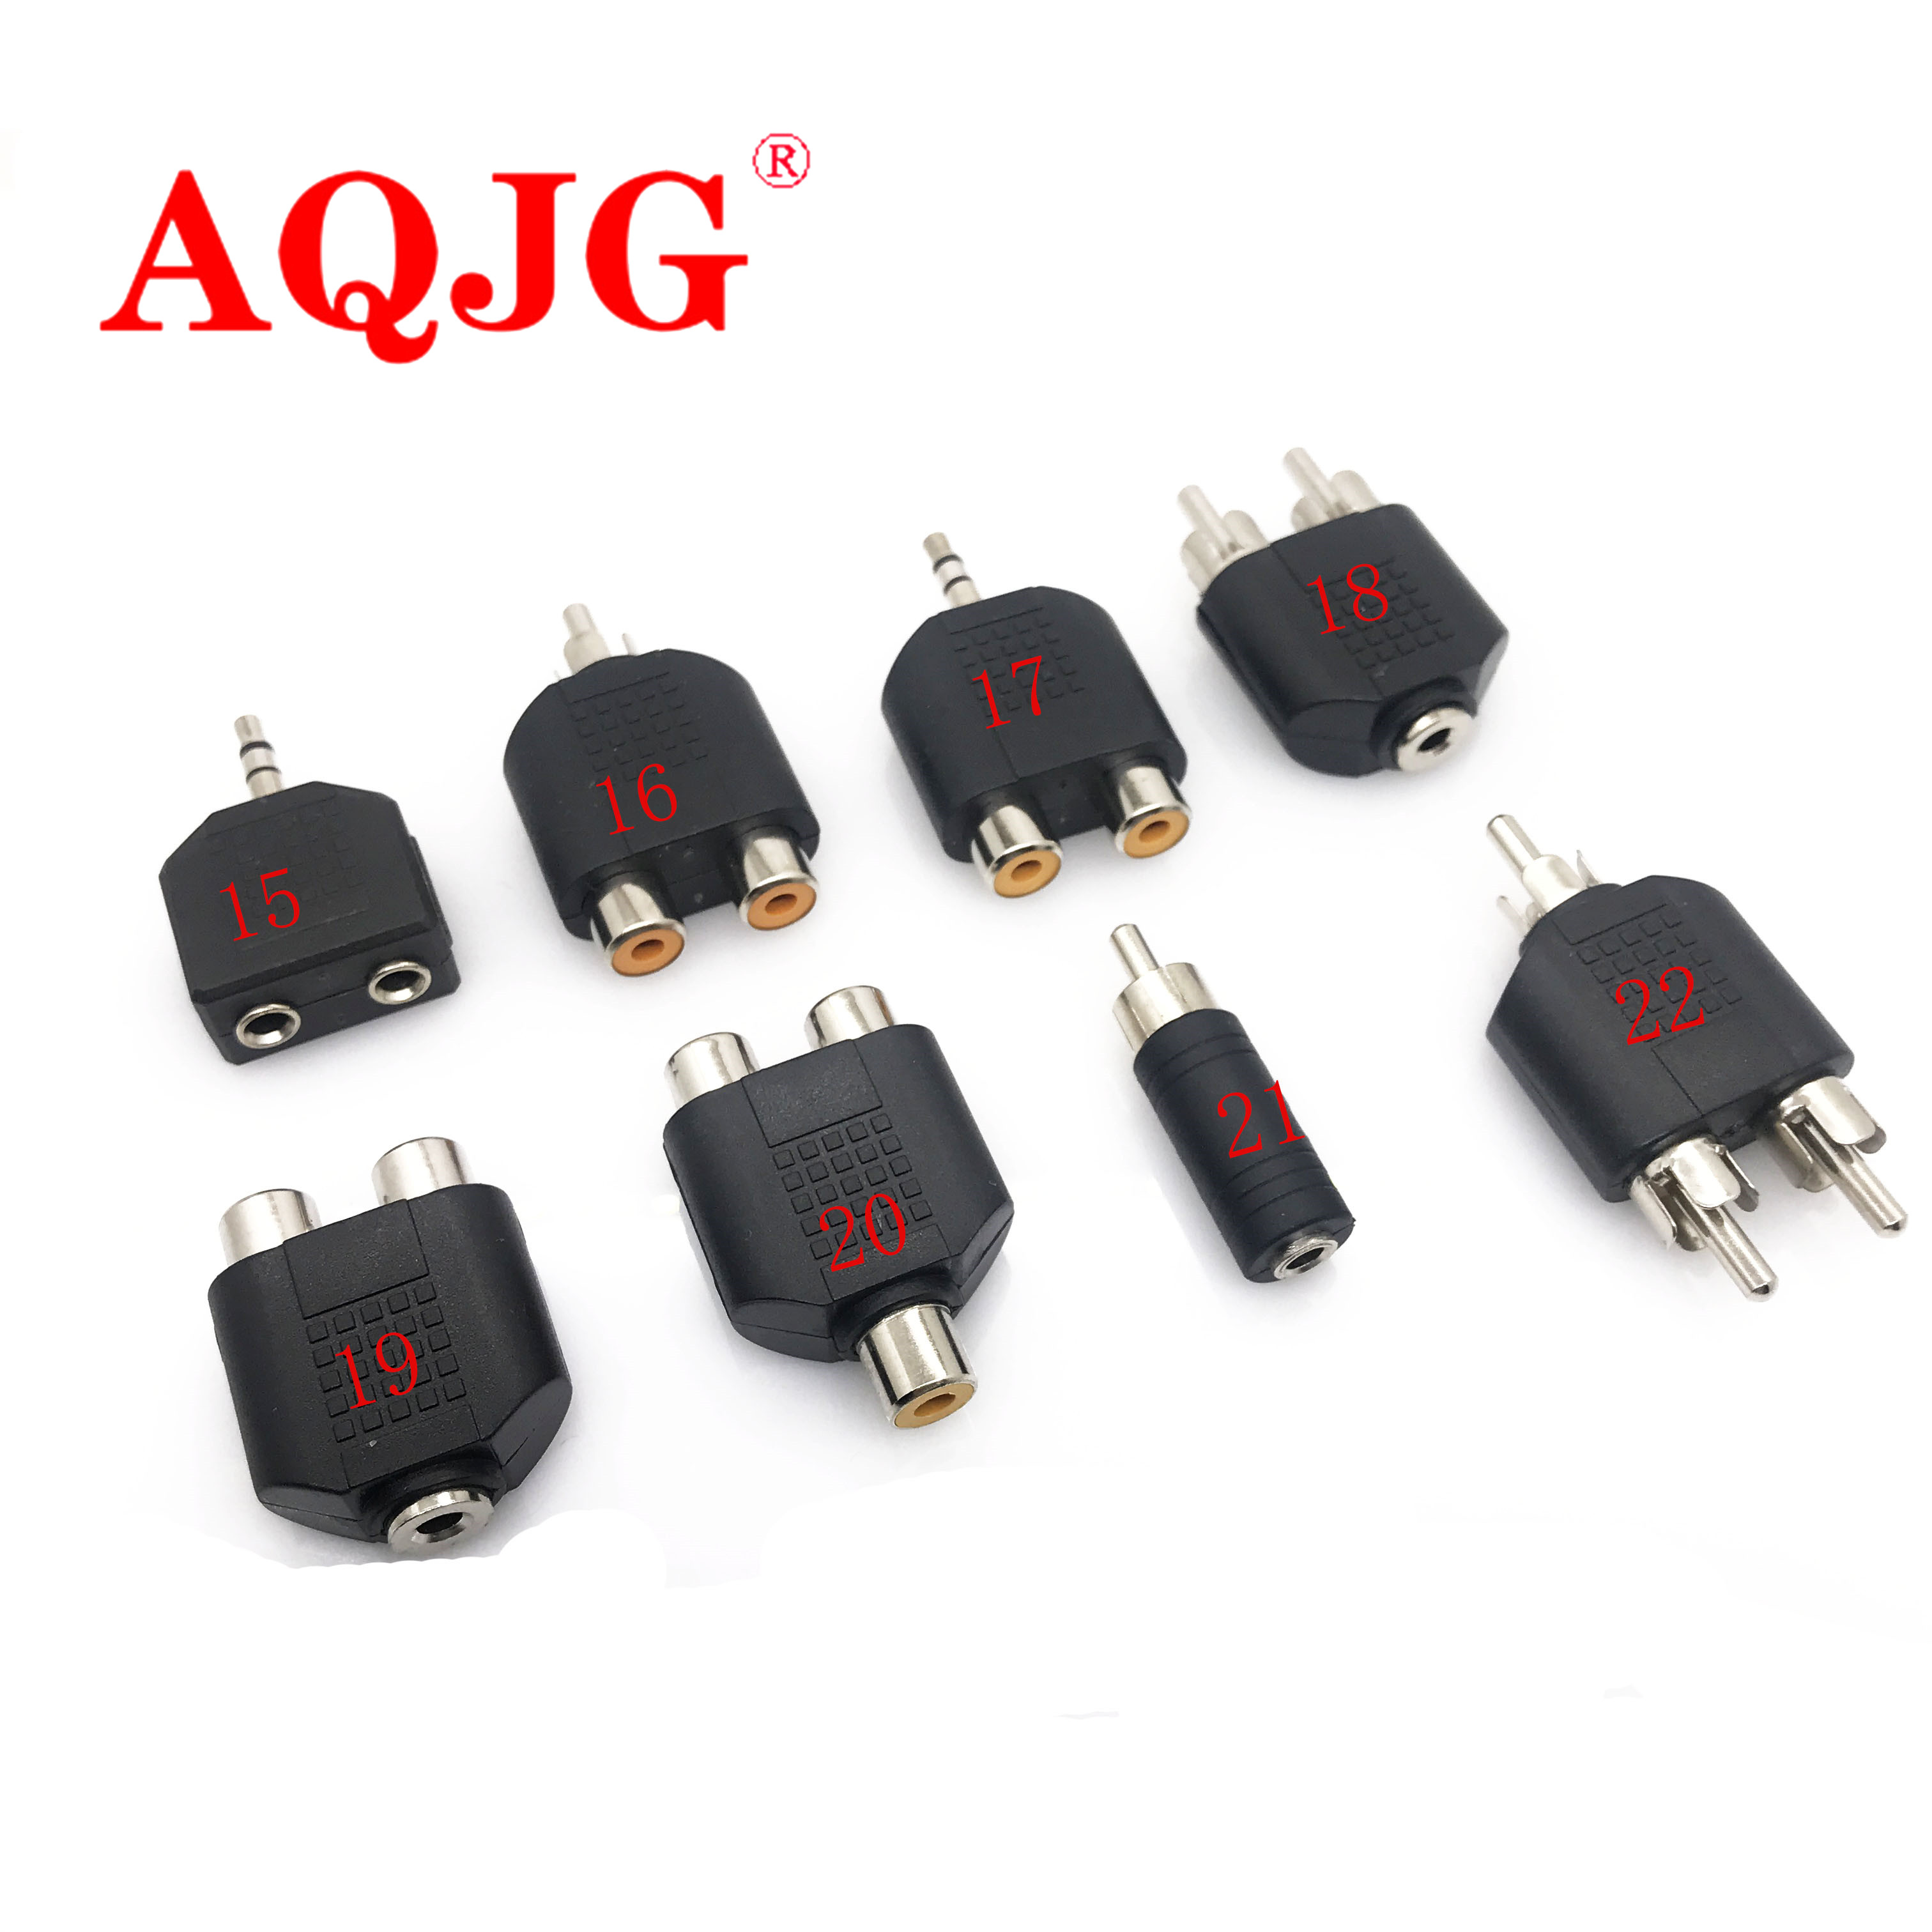 Audio Connecter Adaptor Plug 3.5 Stereo Plug RCA AV Splitter 6.5 Male To Female Audio Cable Adapter RCA 1 To 2 90 Degree BNC6.35